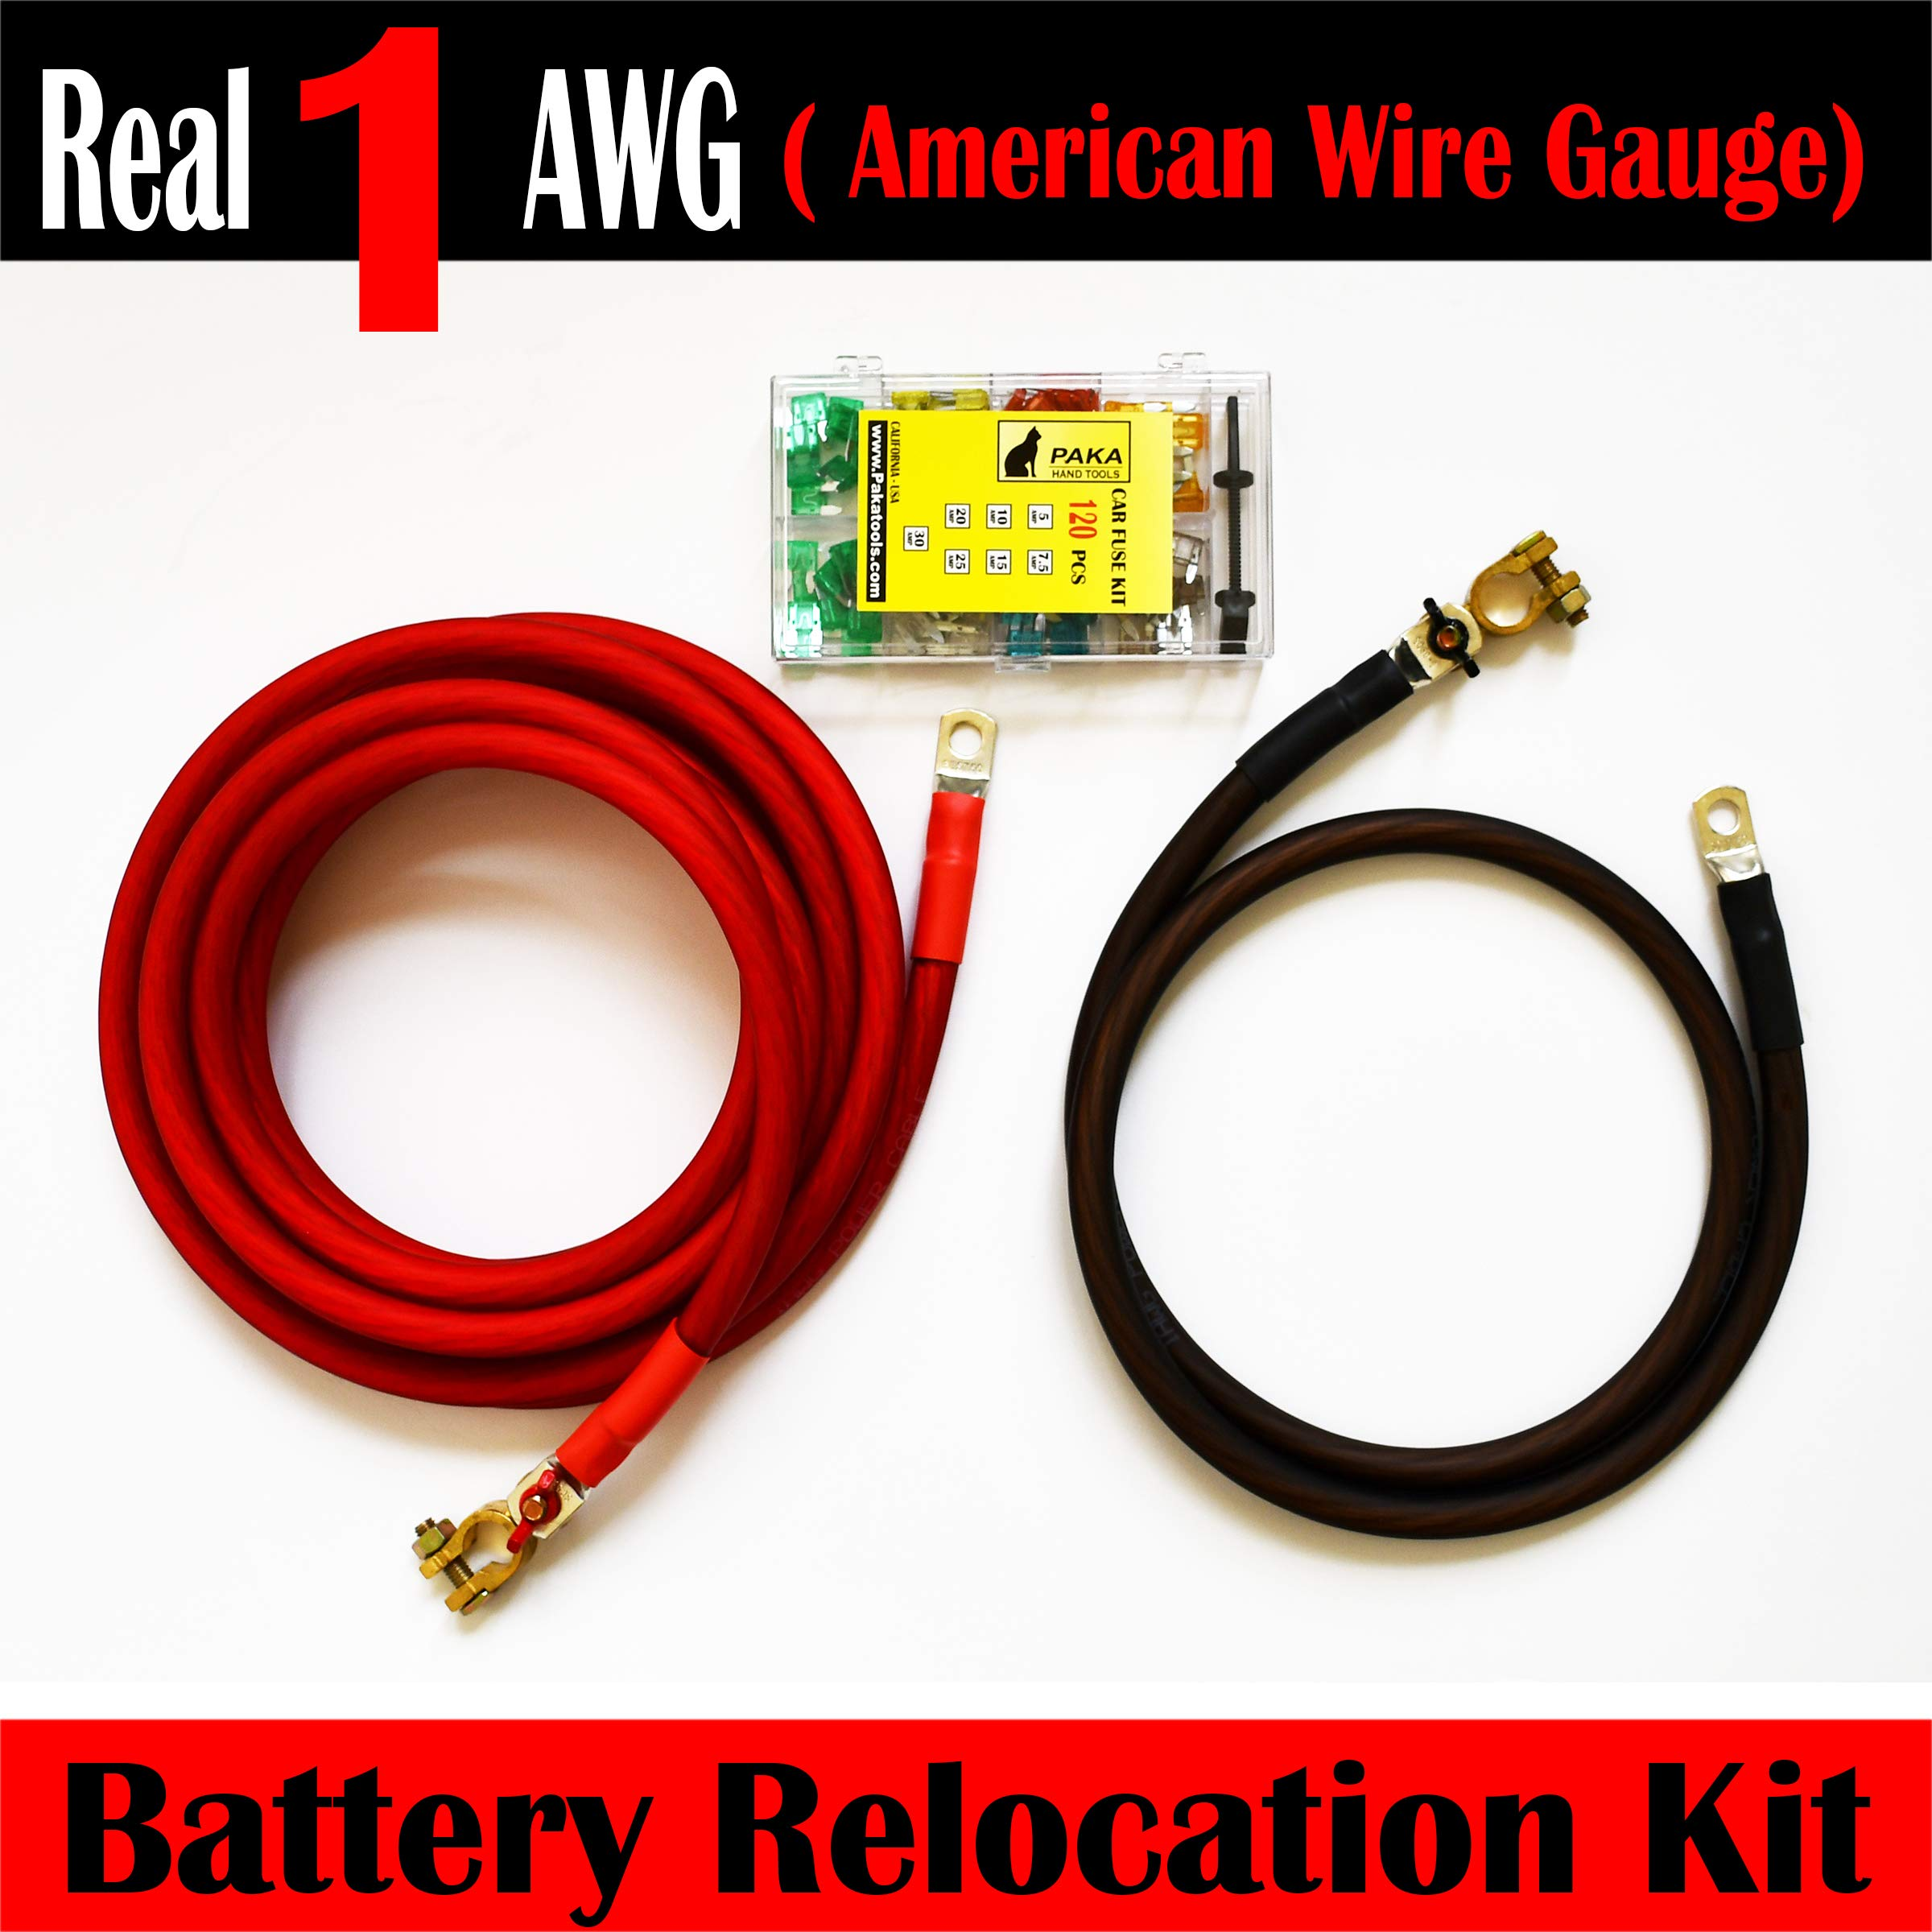 MADE IN USA Battery Relocation Kit, 1 AWG Cable, Top Post 16 + 4 Feet + Fuse Kit by PAKA TOOLS